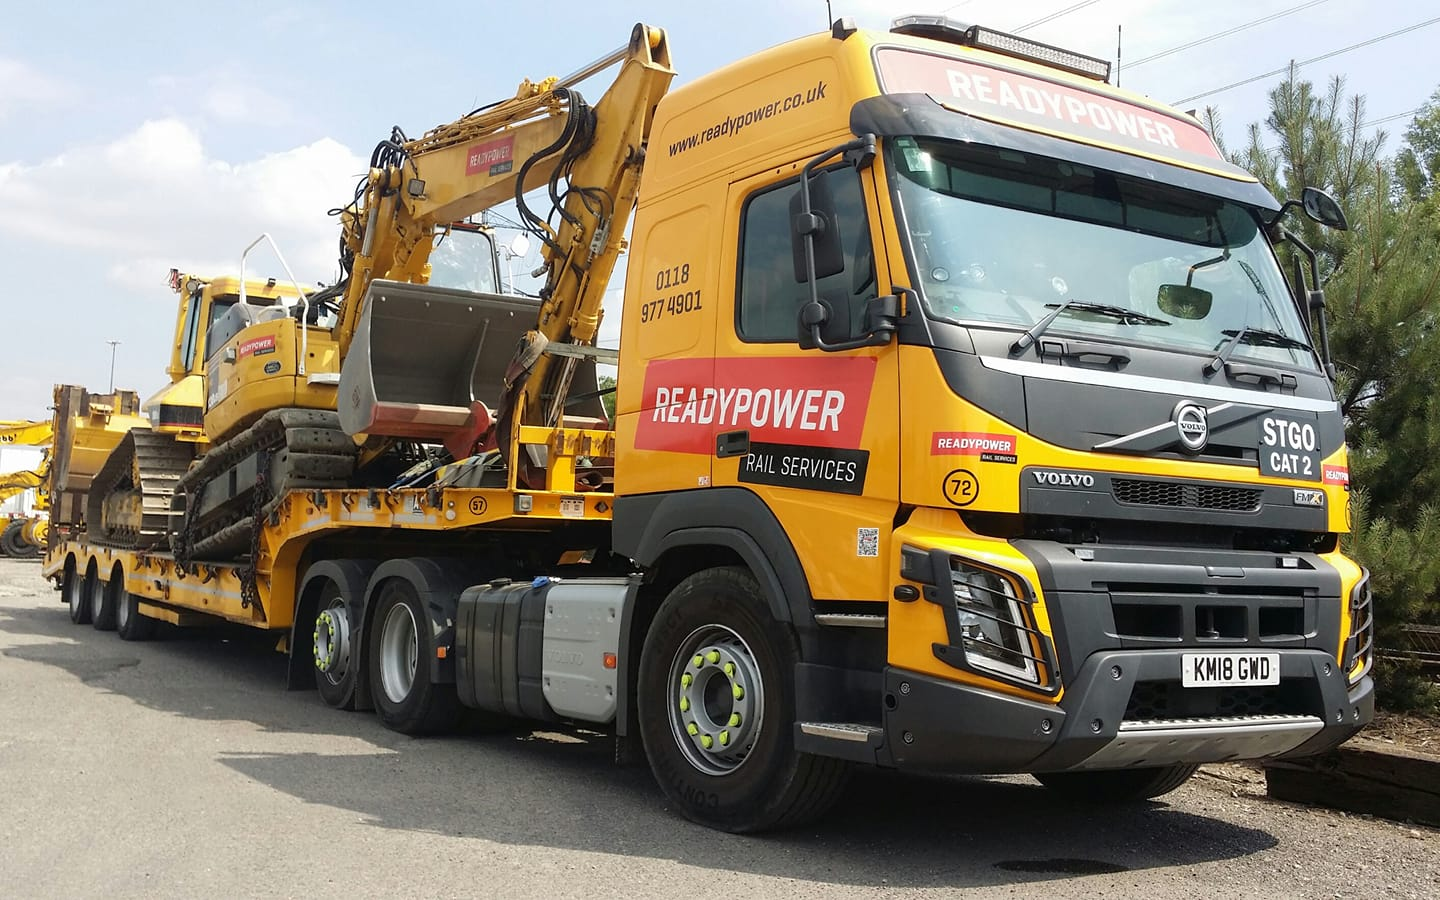 Readypower Rail Services Volvo FMX with Low Loader and Machines on Back